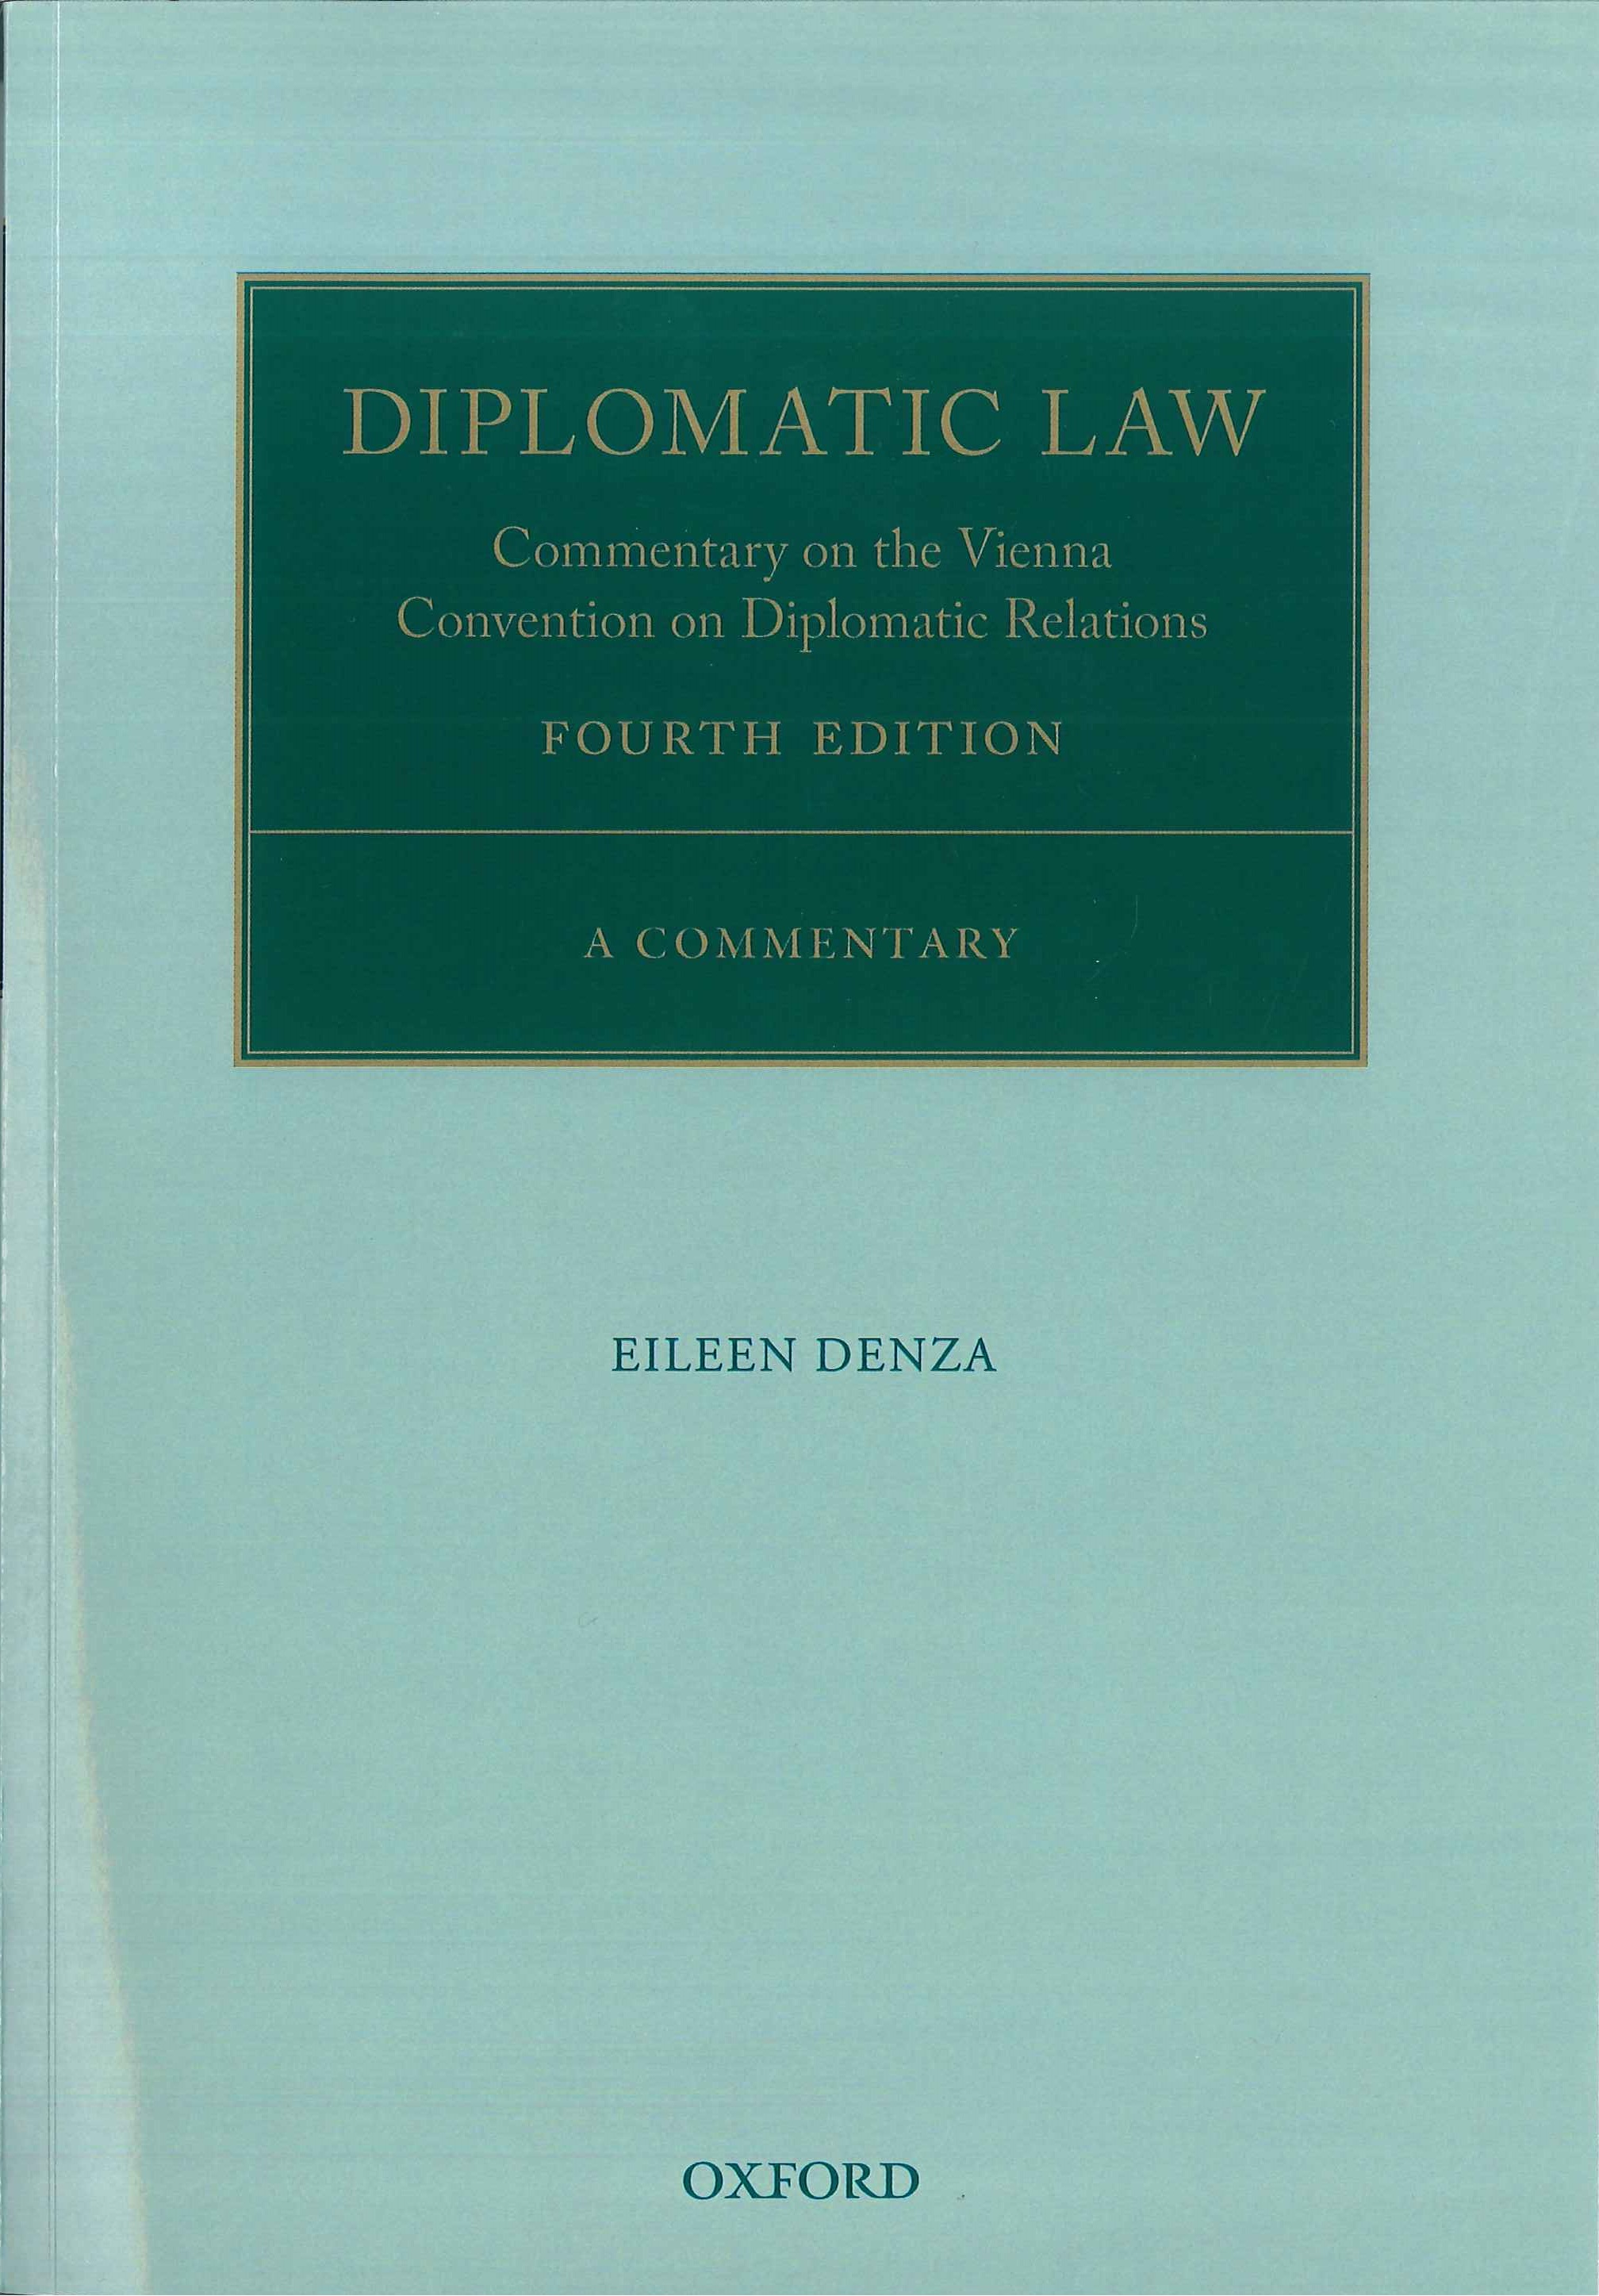 Diplomatic law:commentary on the Vienna convention on diplomatic relations:a commentary